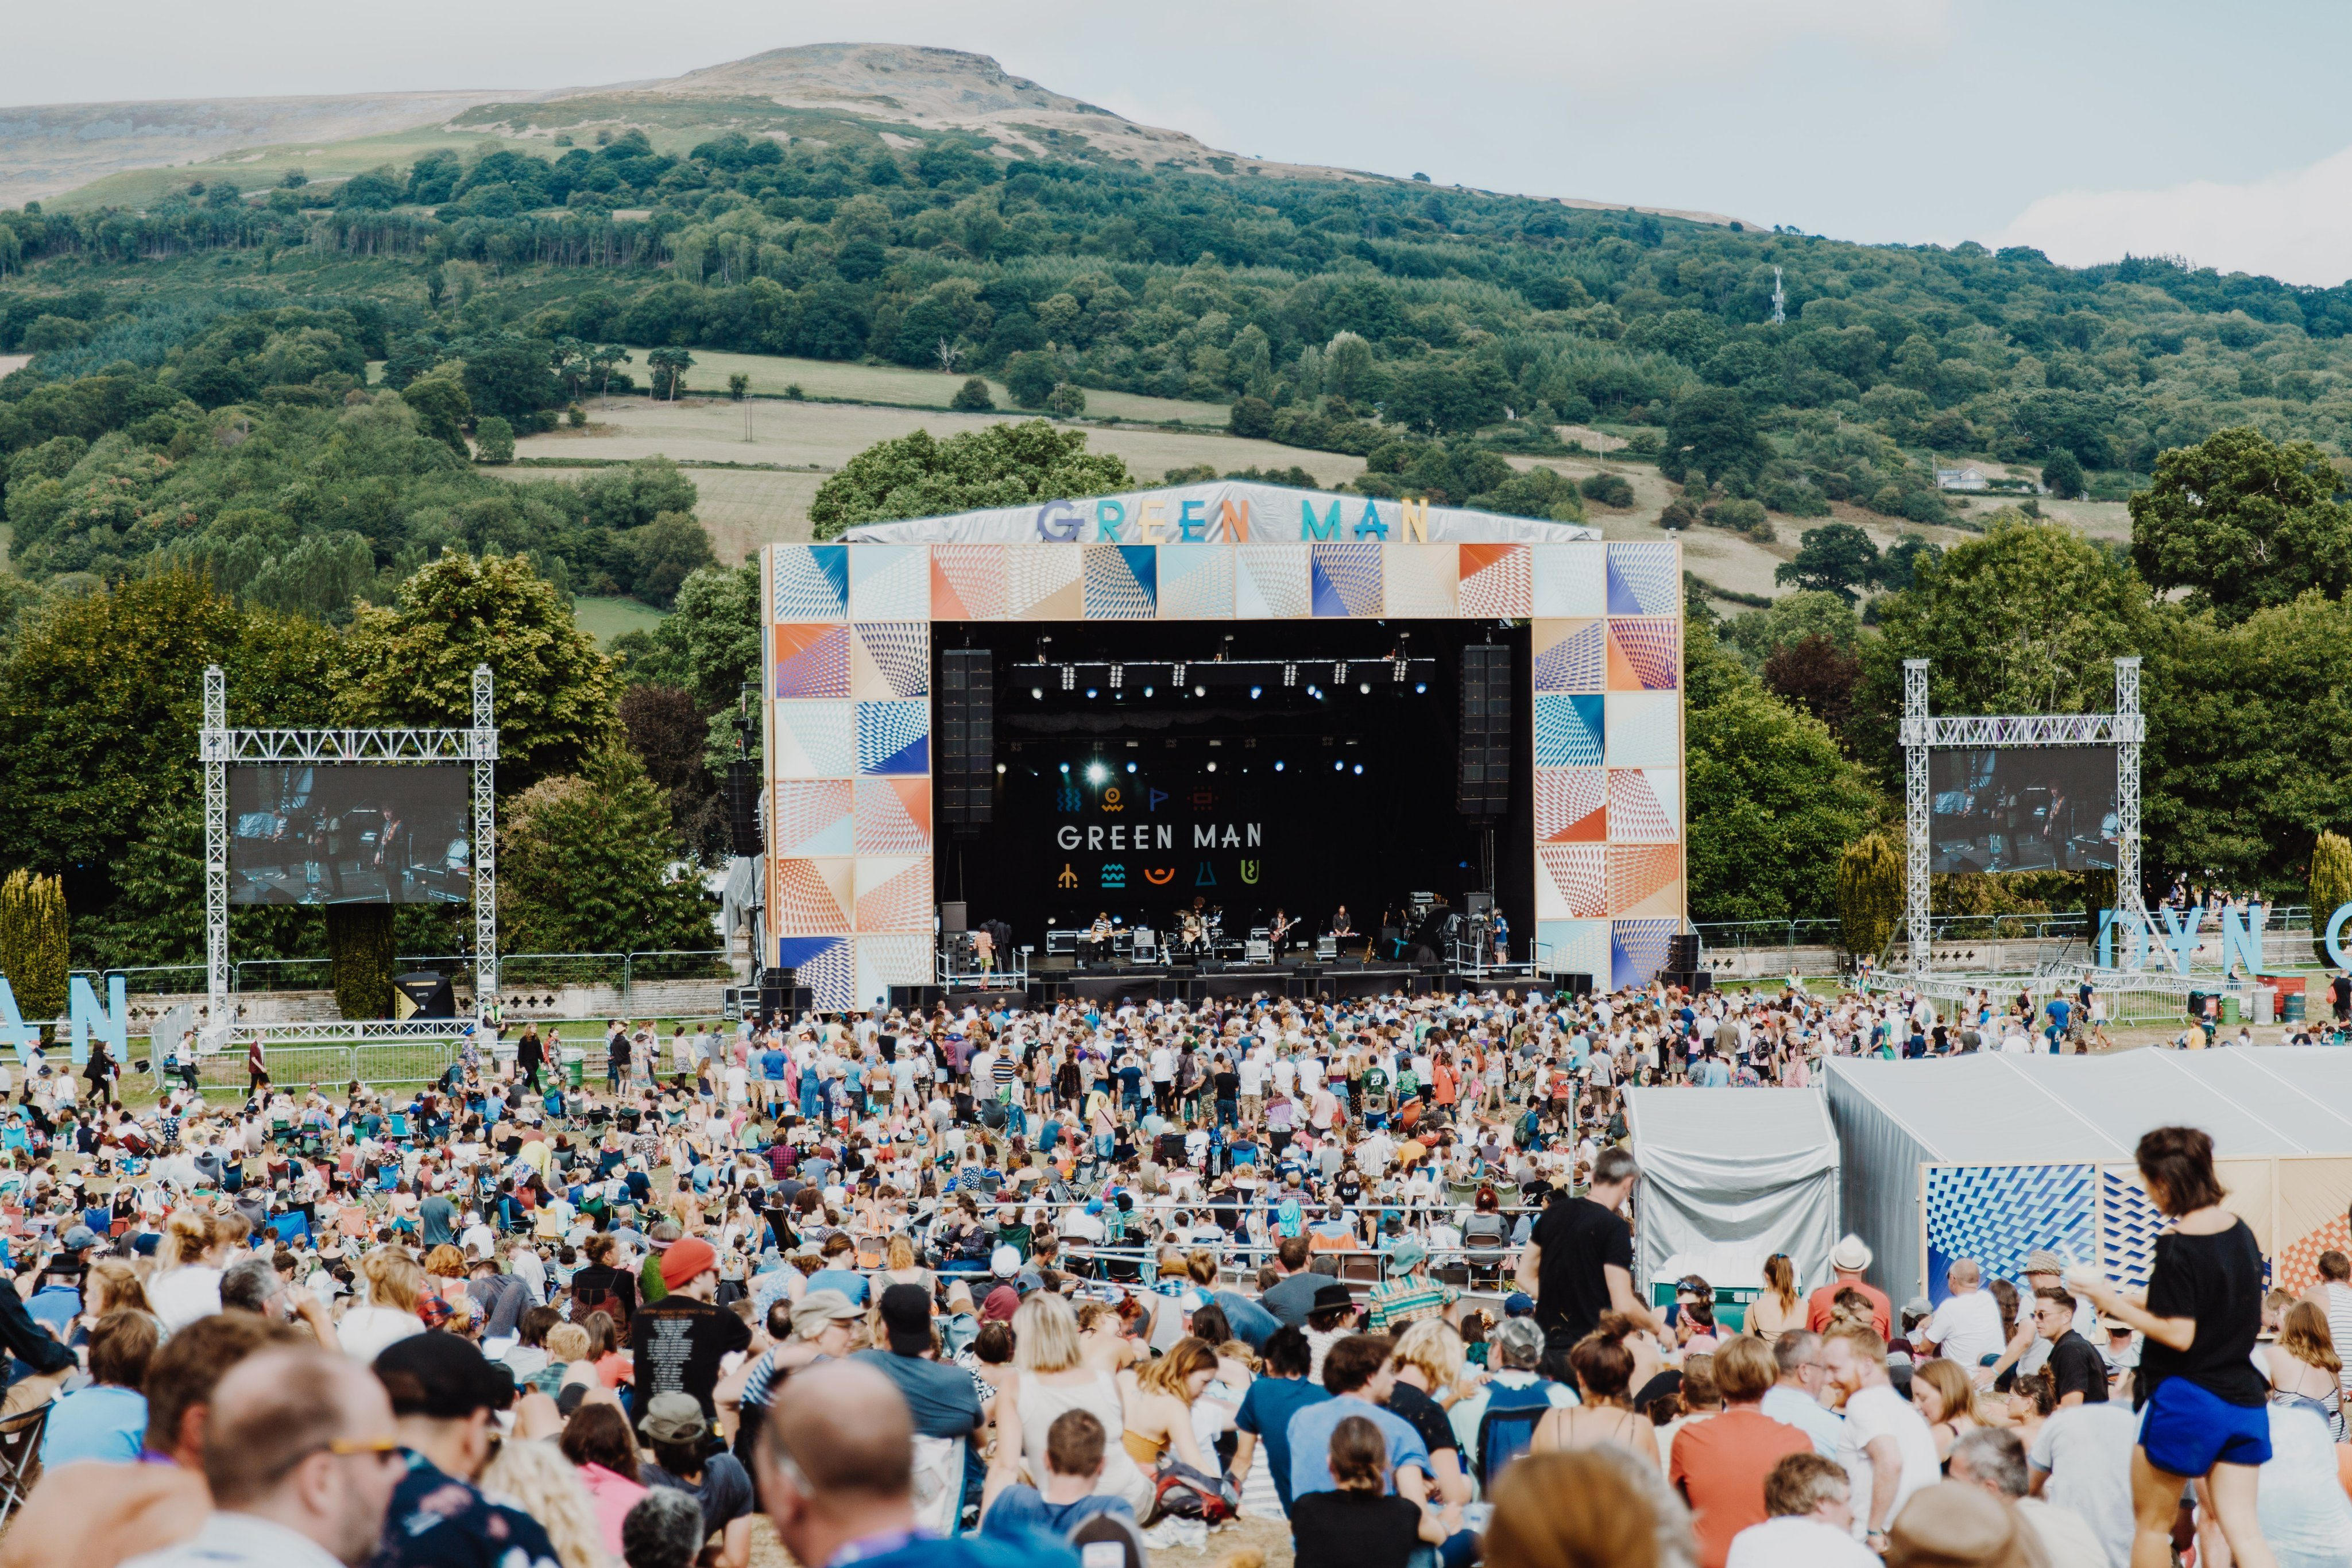 The crowd and main stage at Green Man festival 2019